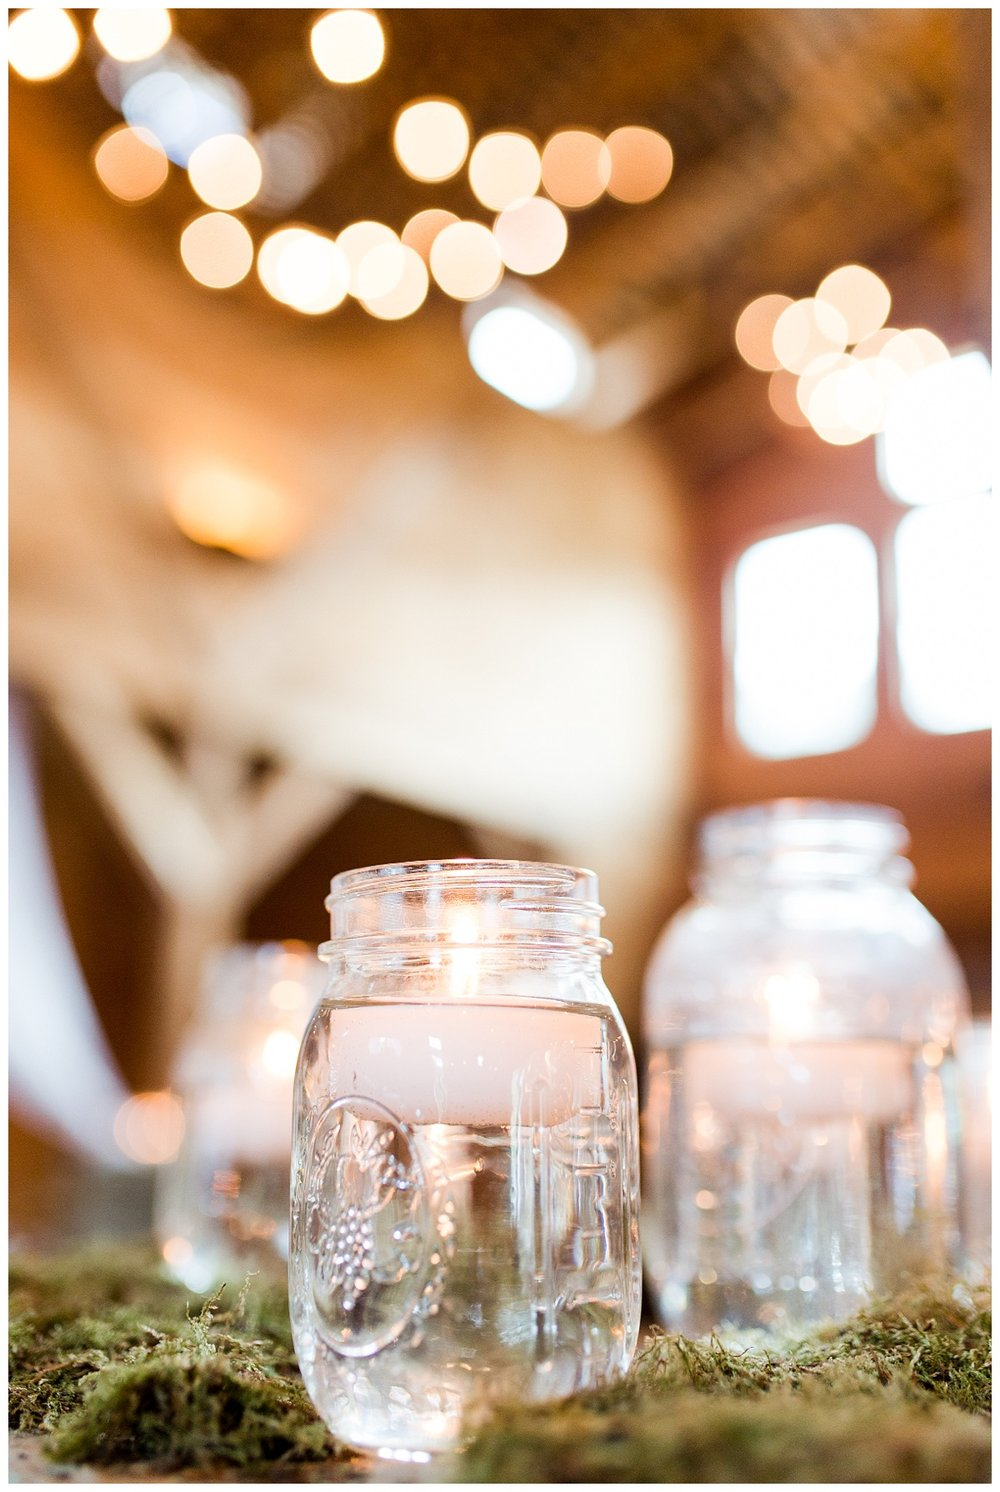 McMahon_Walters Barn_Blog_Abby Breaux Photography-147.jpg